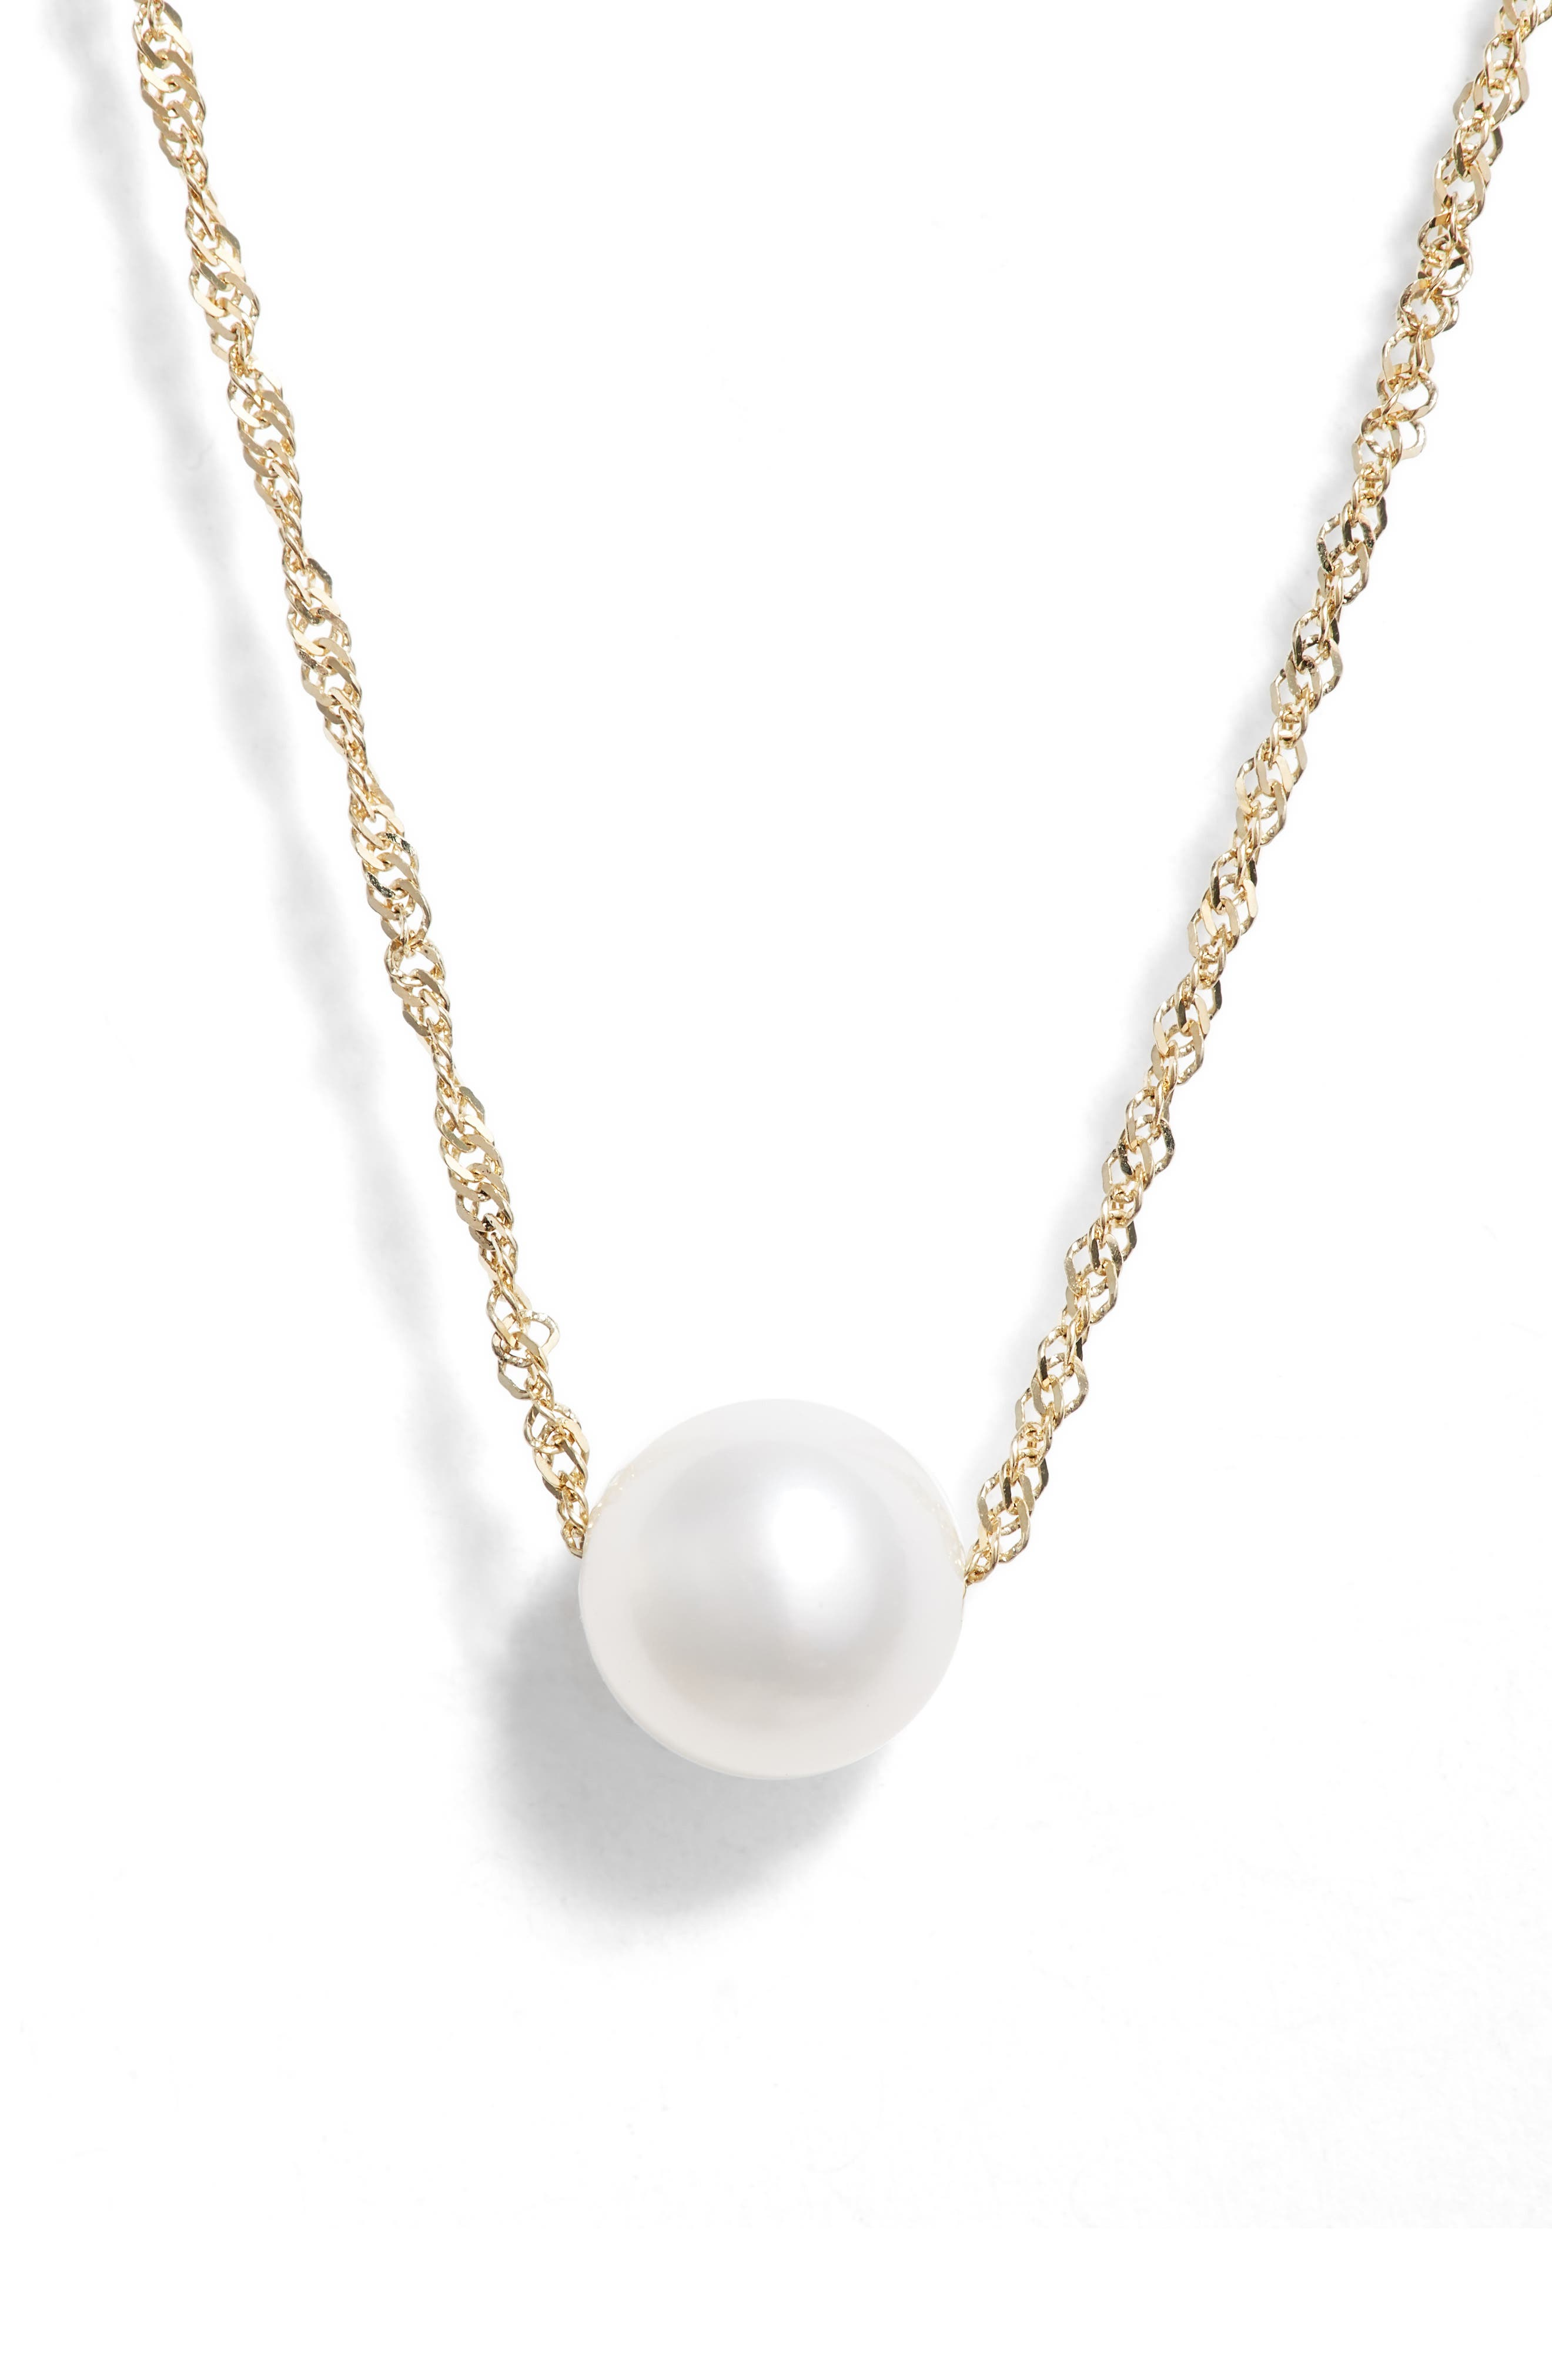 Petite Pearl Necklace,                         Main,                         color, YELLOW GOLD/ PEARL